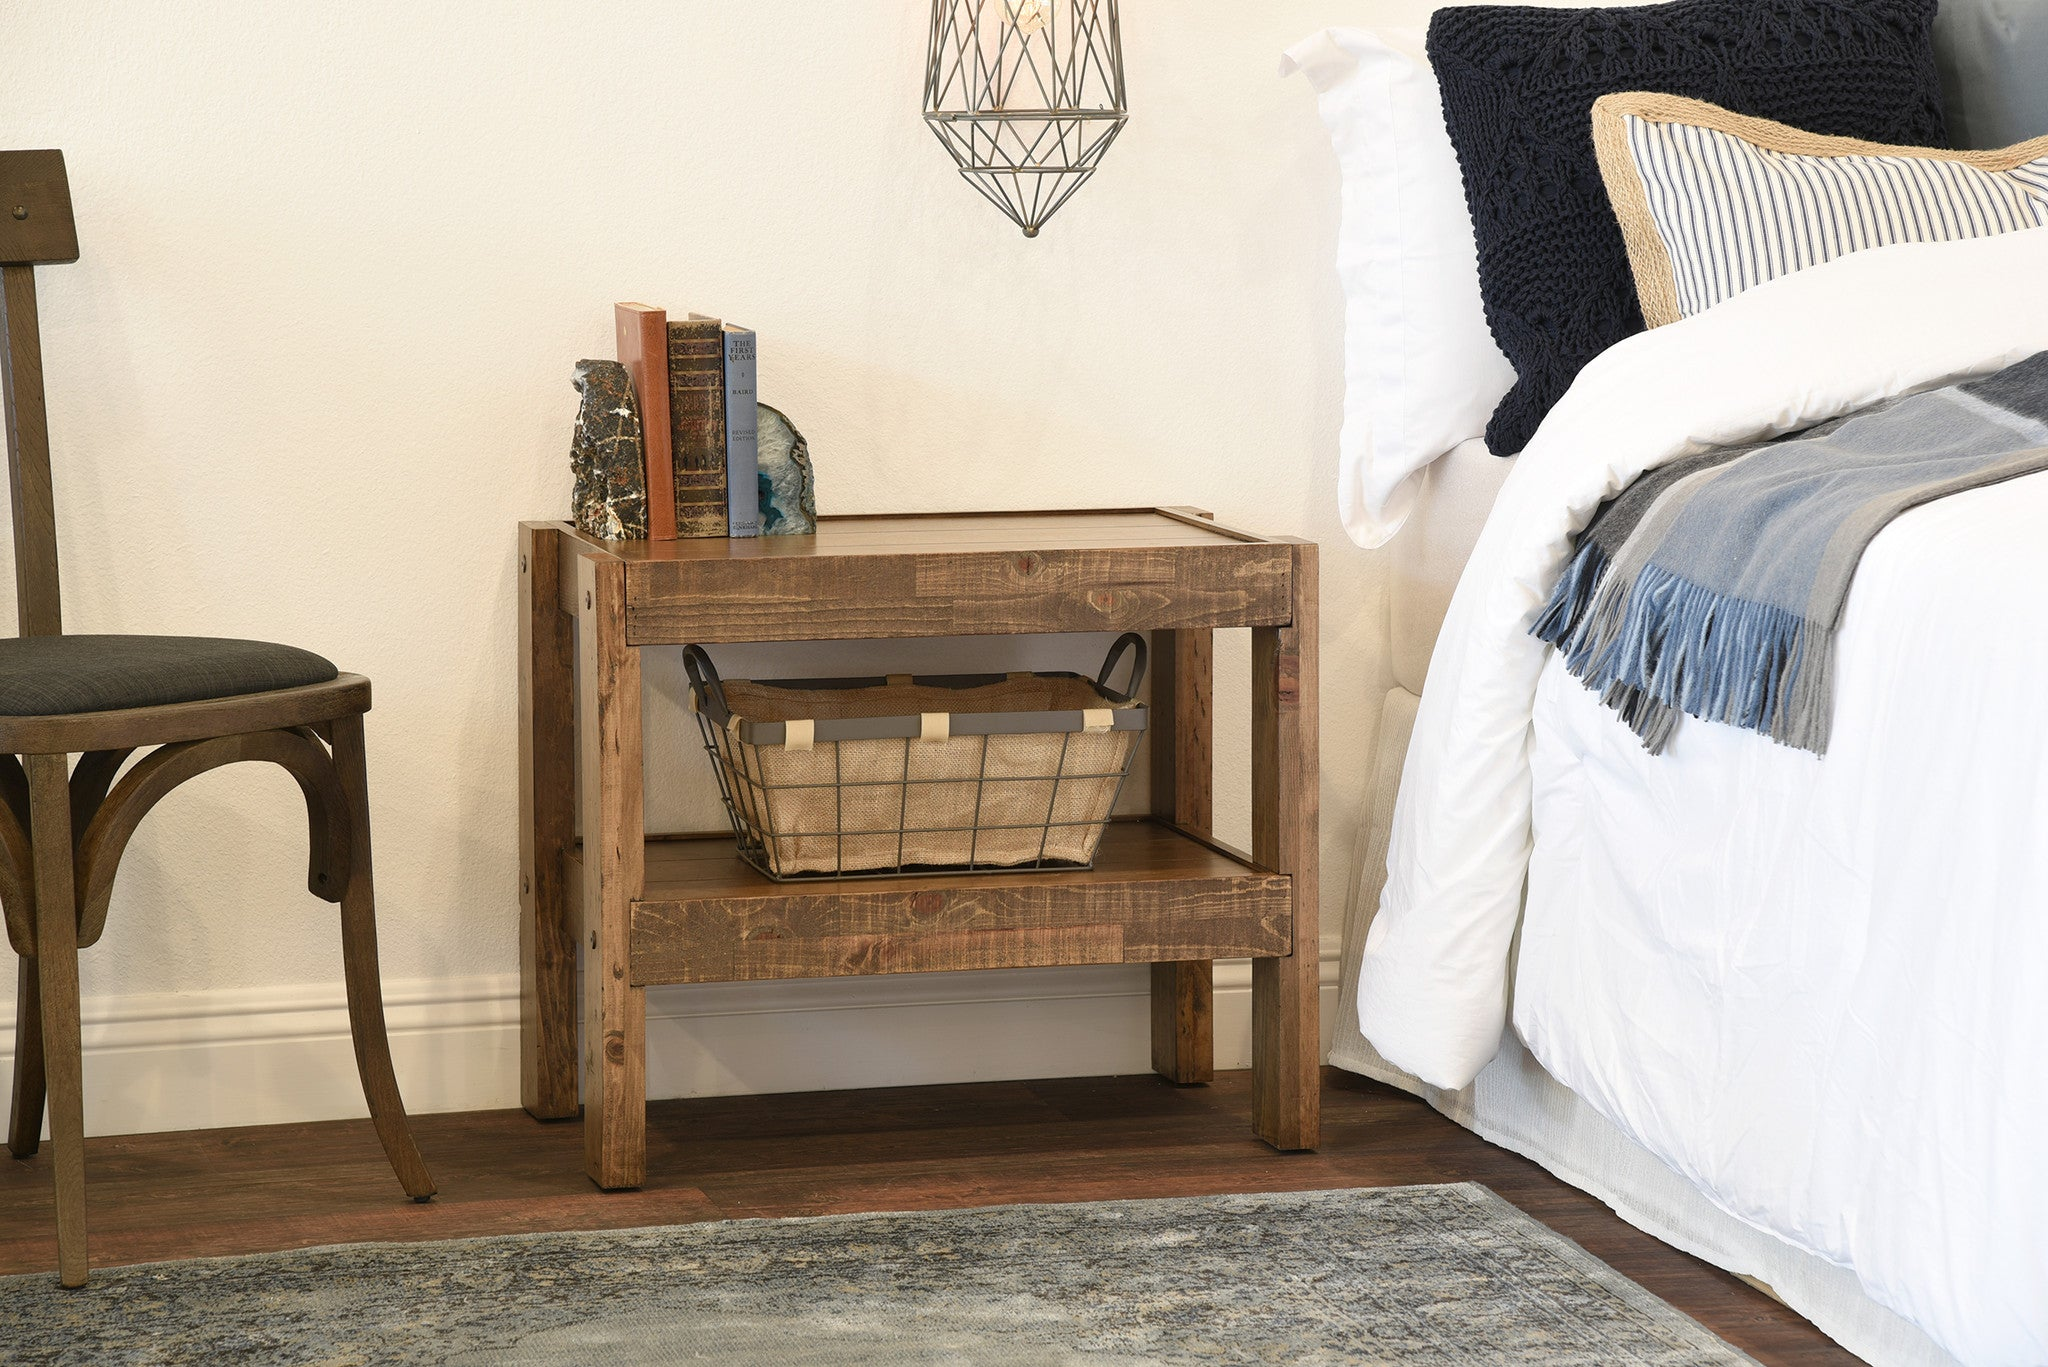 Reclaimed Rustic Farmhouse Pallet Wood Style End Table / Nightstand    PresEARTH Spice